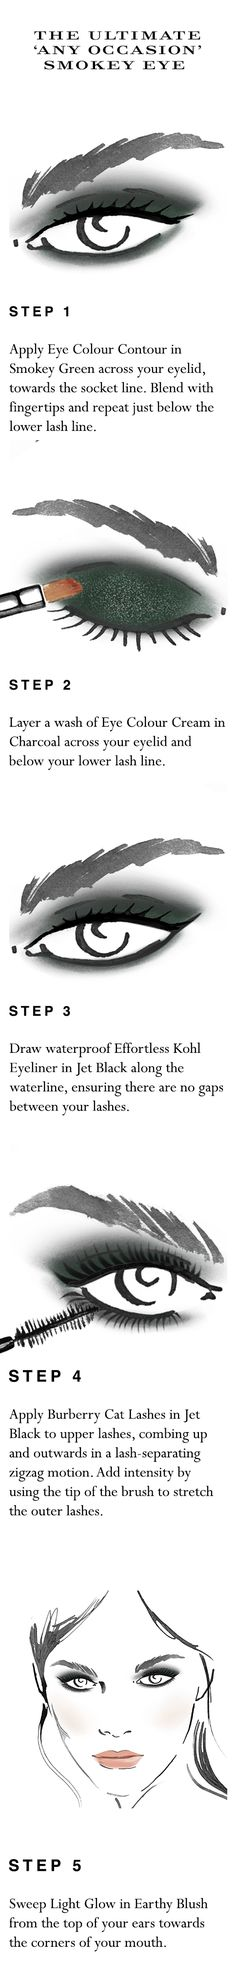 Your easy to follow make-up 'how to' for the ultimate smokey eye in 10 minutes. Shop the complete look at Sephora.com and explore new Burberry Cat Lashes.